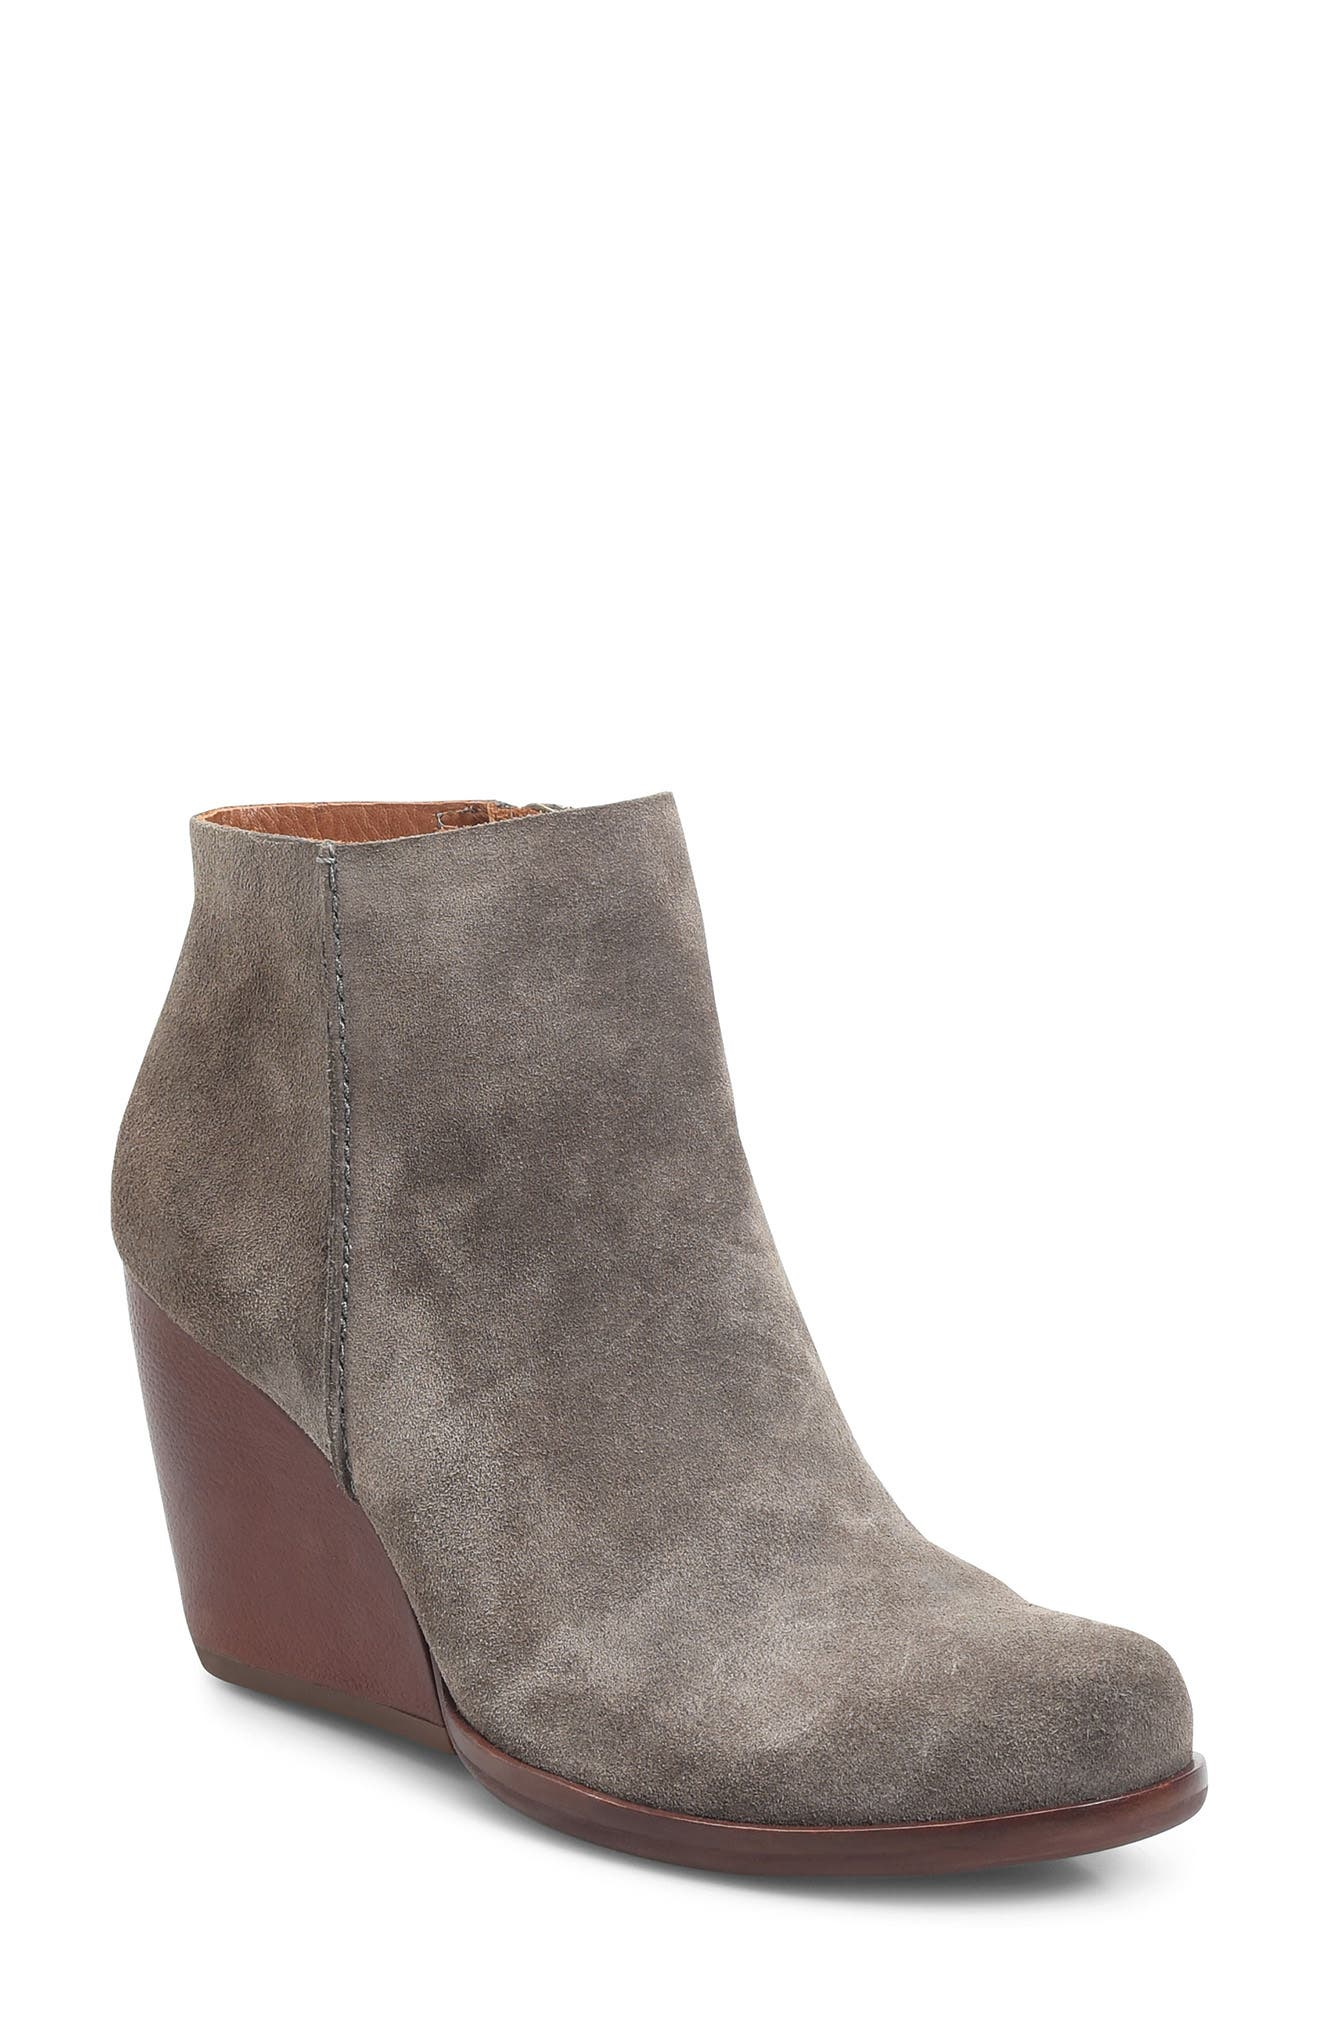 Natalya Wedge Bootie,                             Main thumbnail 1, color,                             Grey Suede